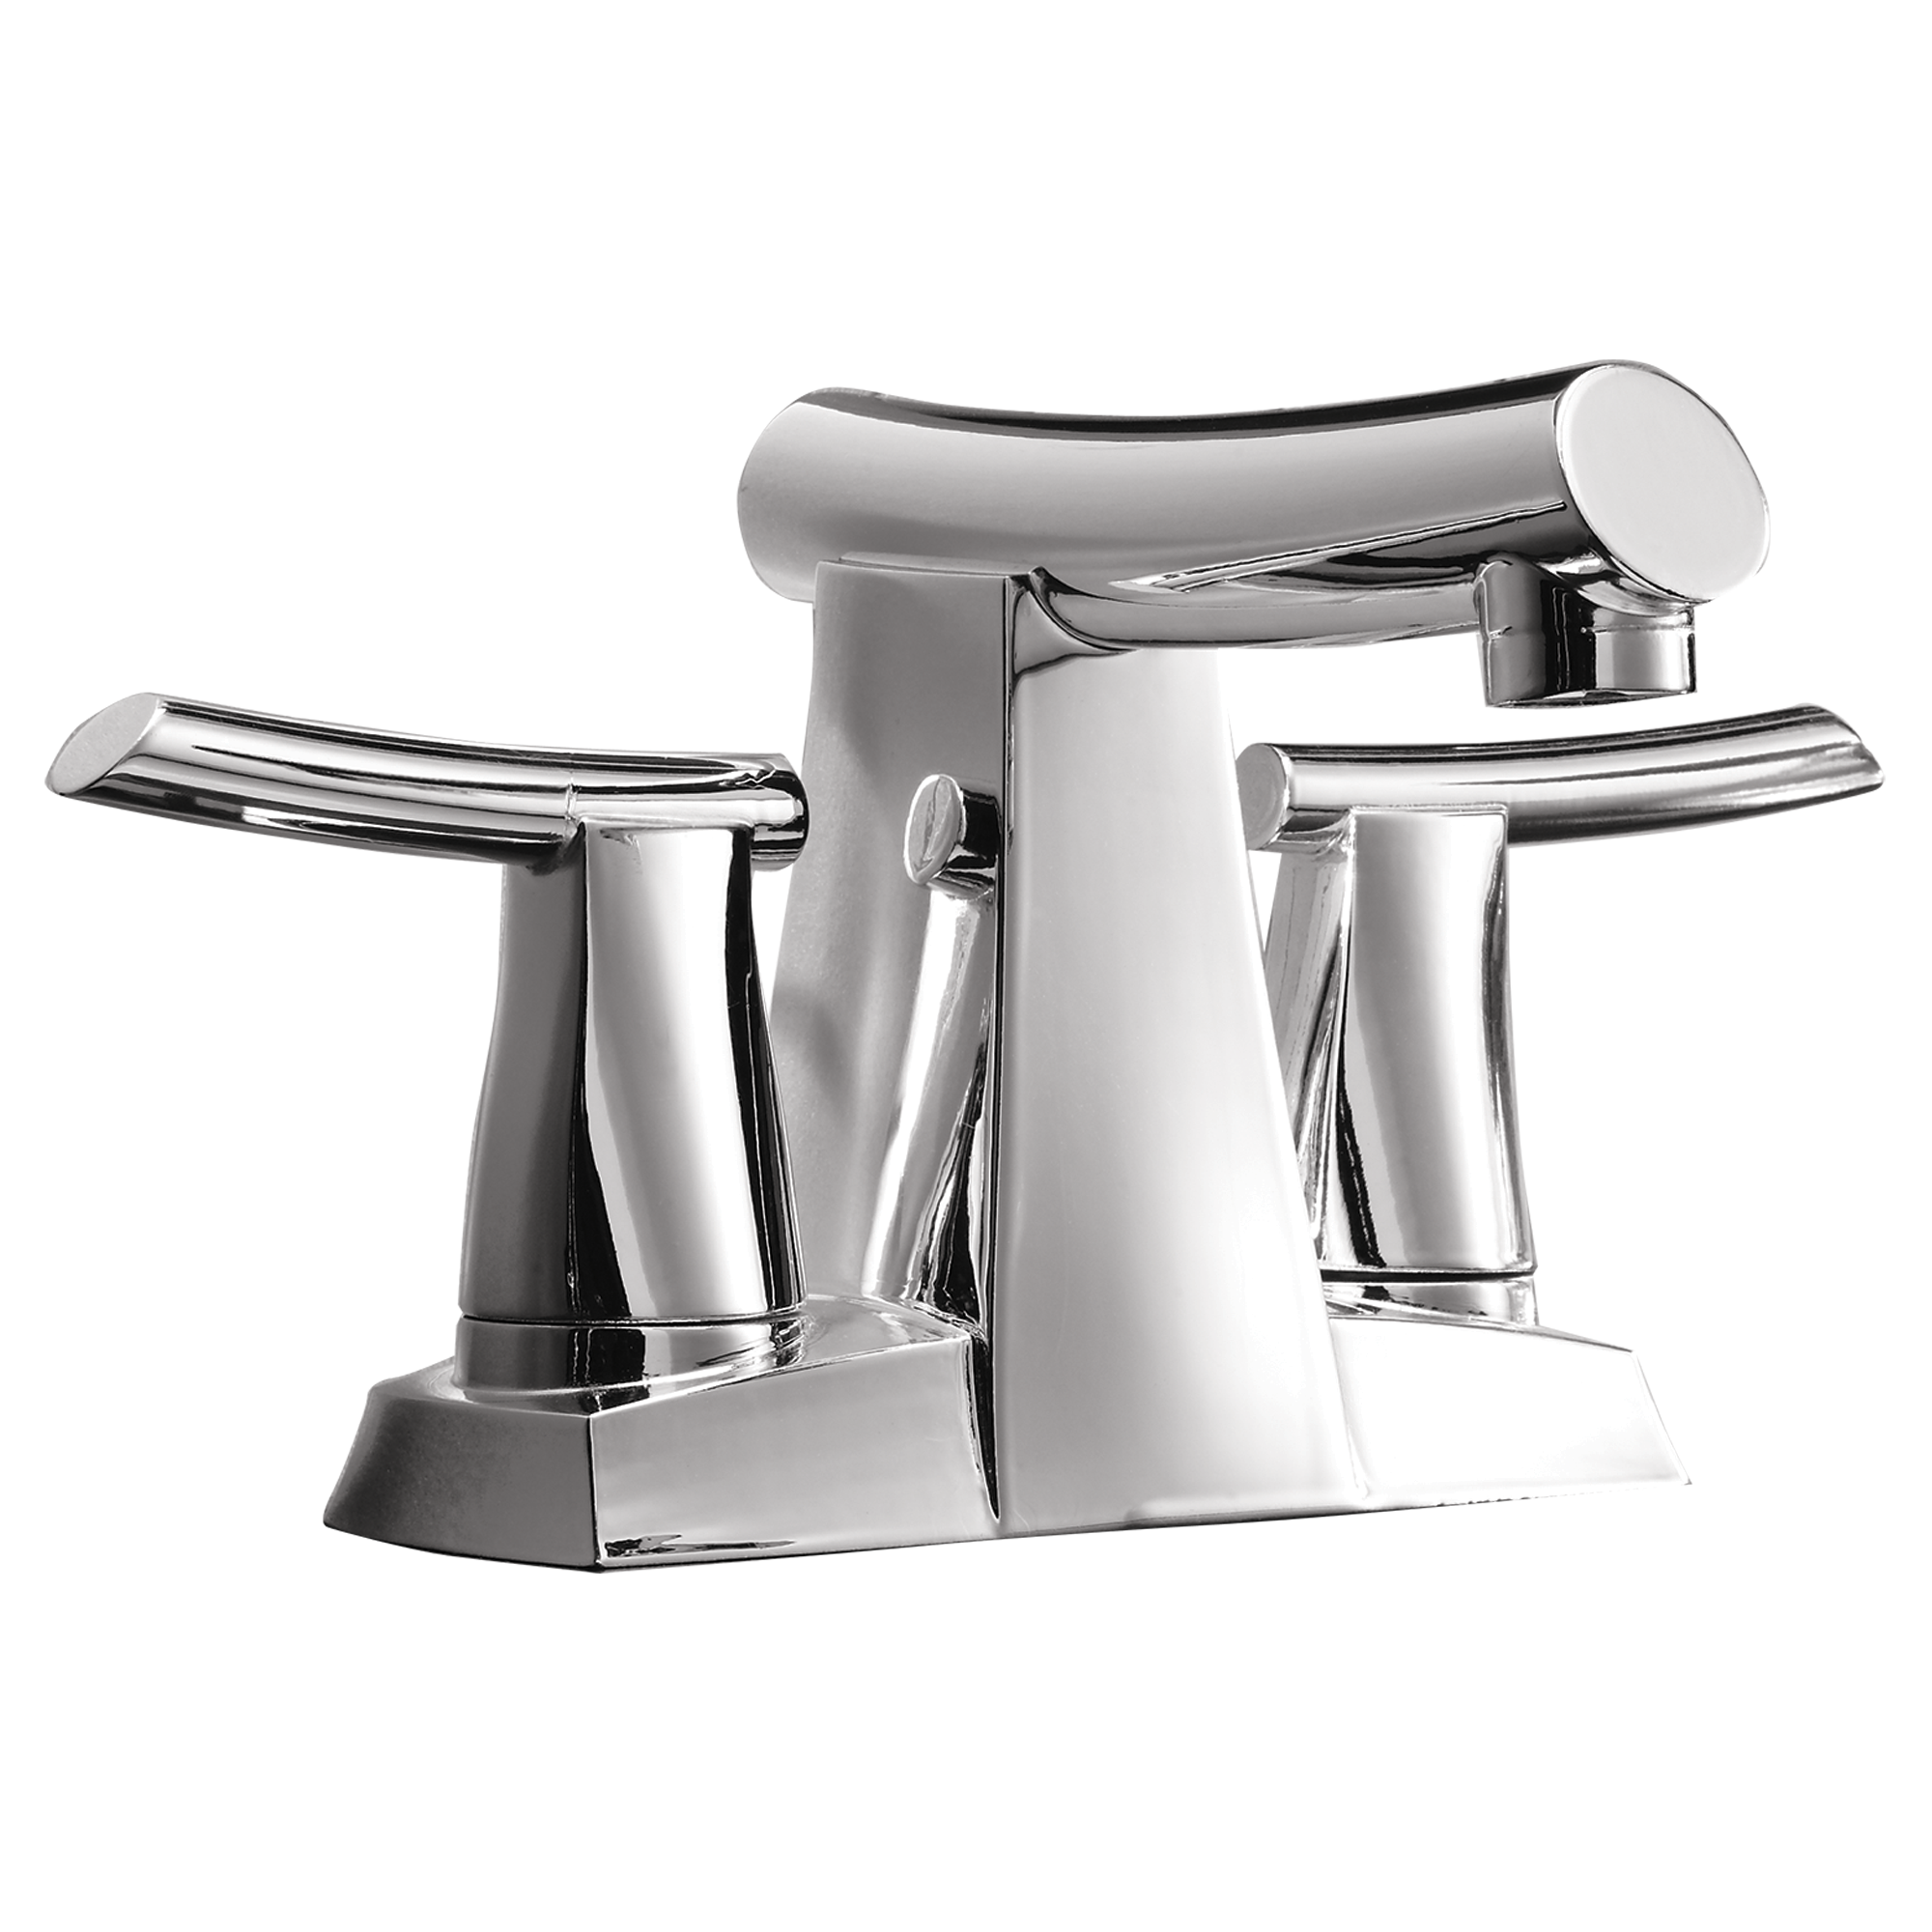 Faucet clipart lab sink. Bathroom faucets tub fillers